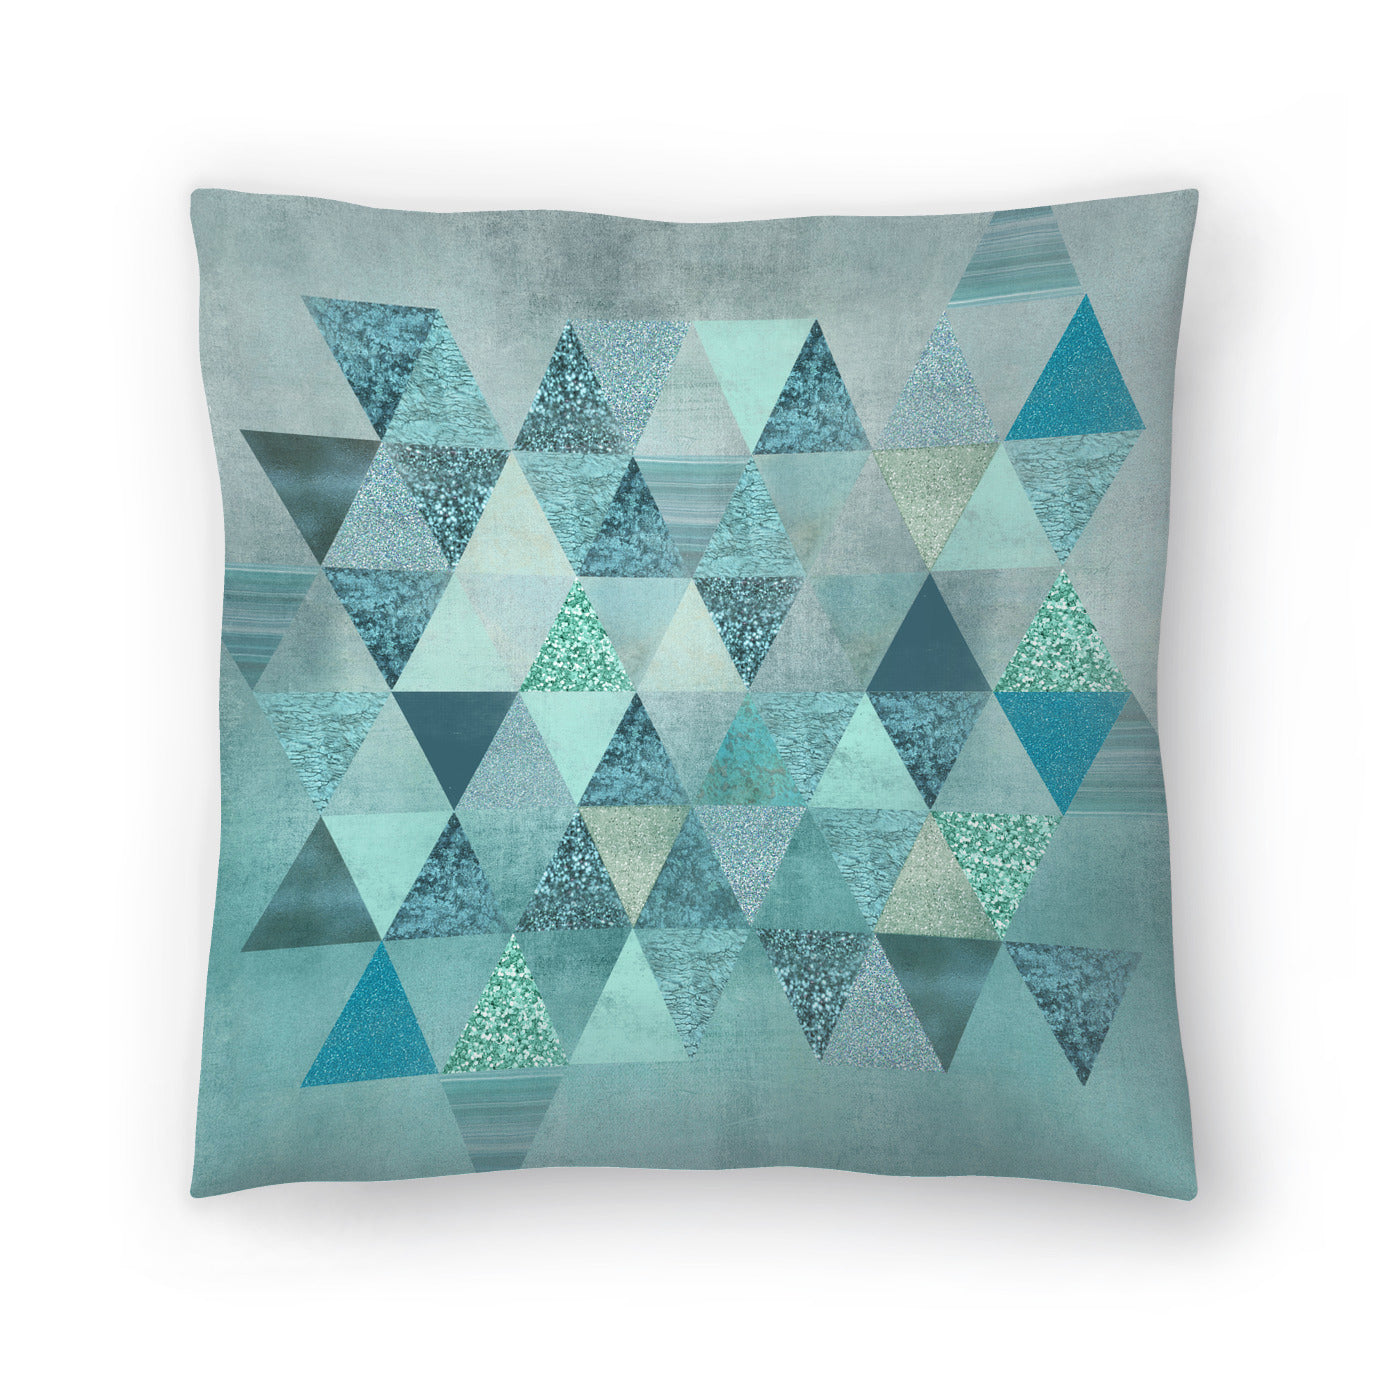 Precious Triangles by Lebens Art Decorative Pillow - Decorative Pillow - Americanflat